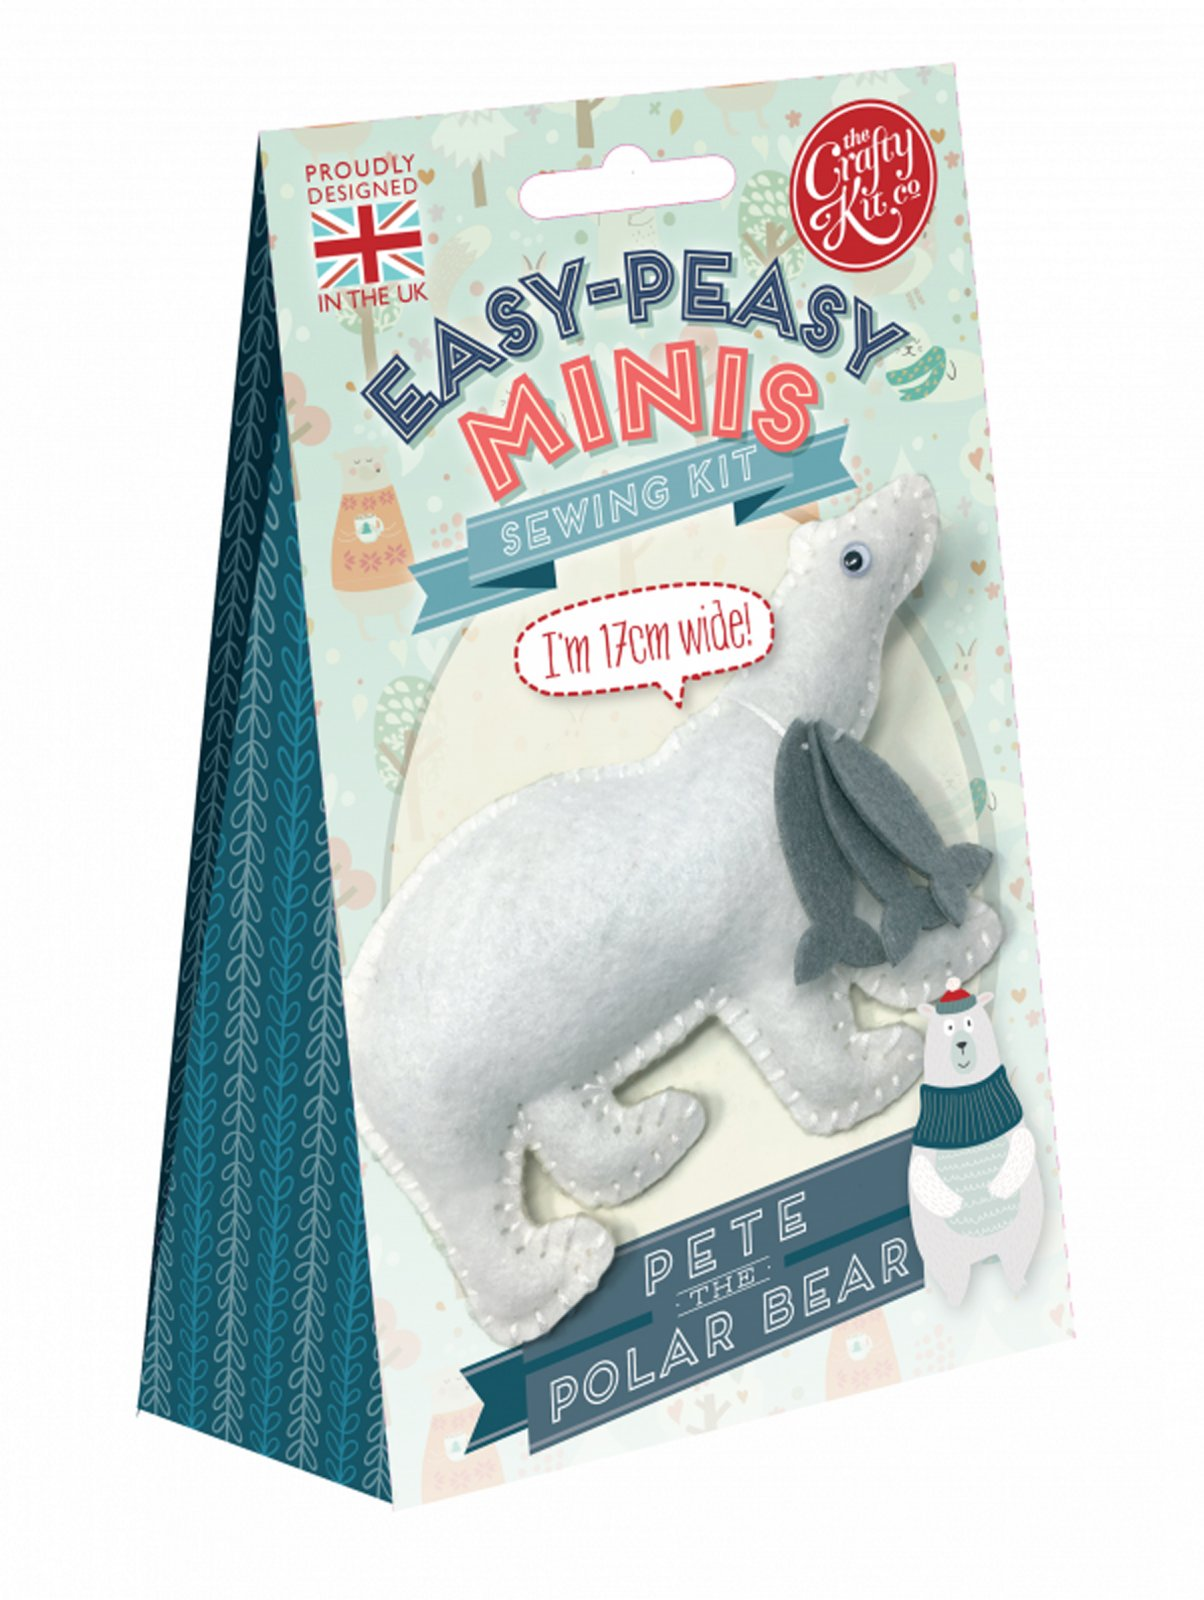 Sewing Kit Minis - Pete The Polar Bear - By The Crafty Kit Co